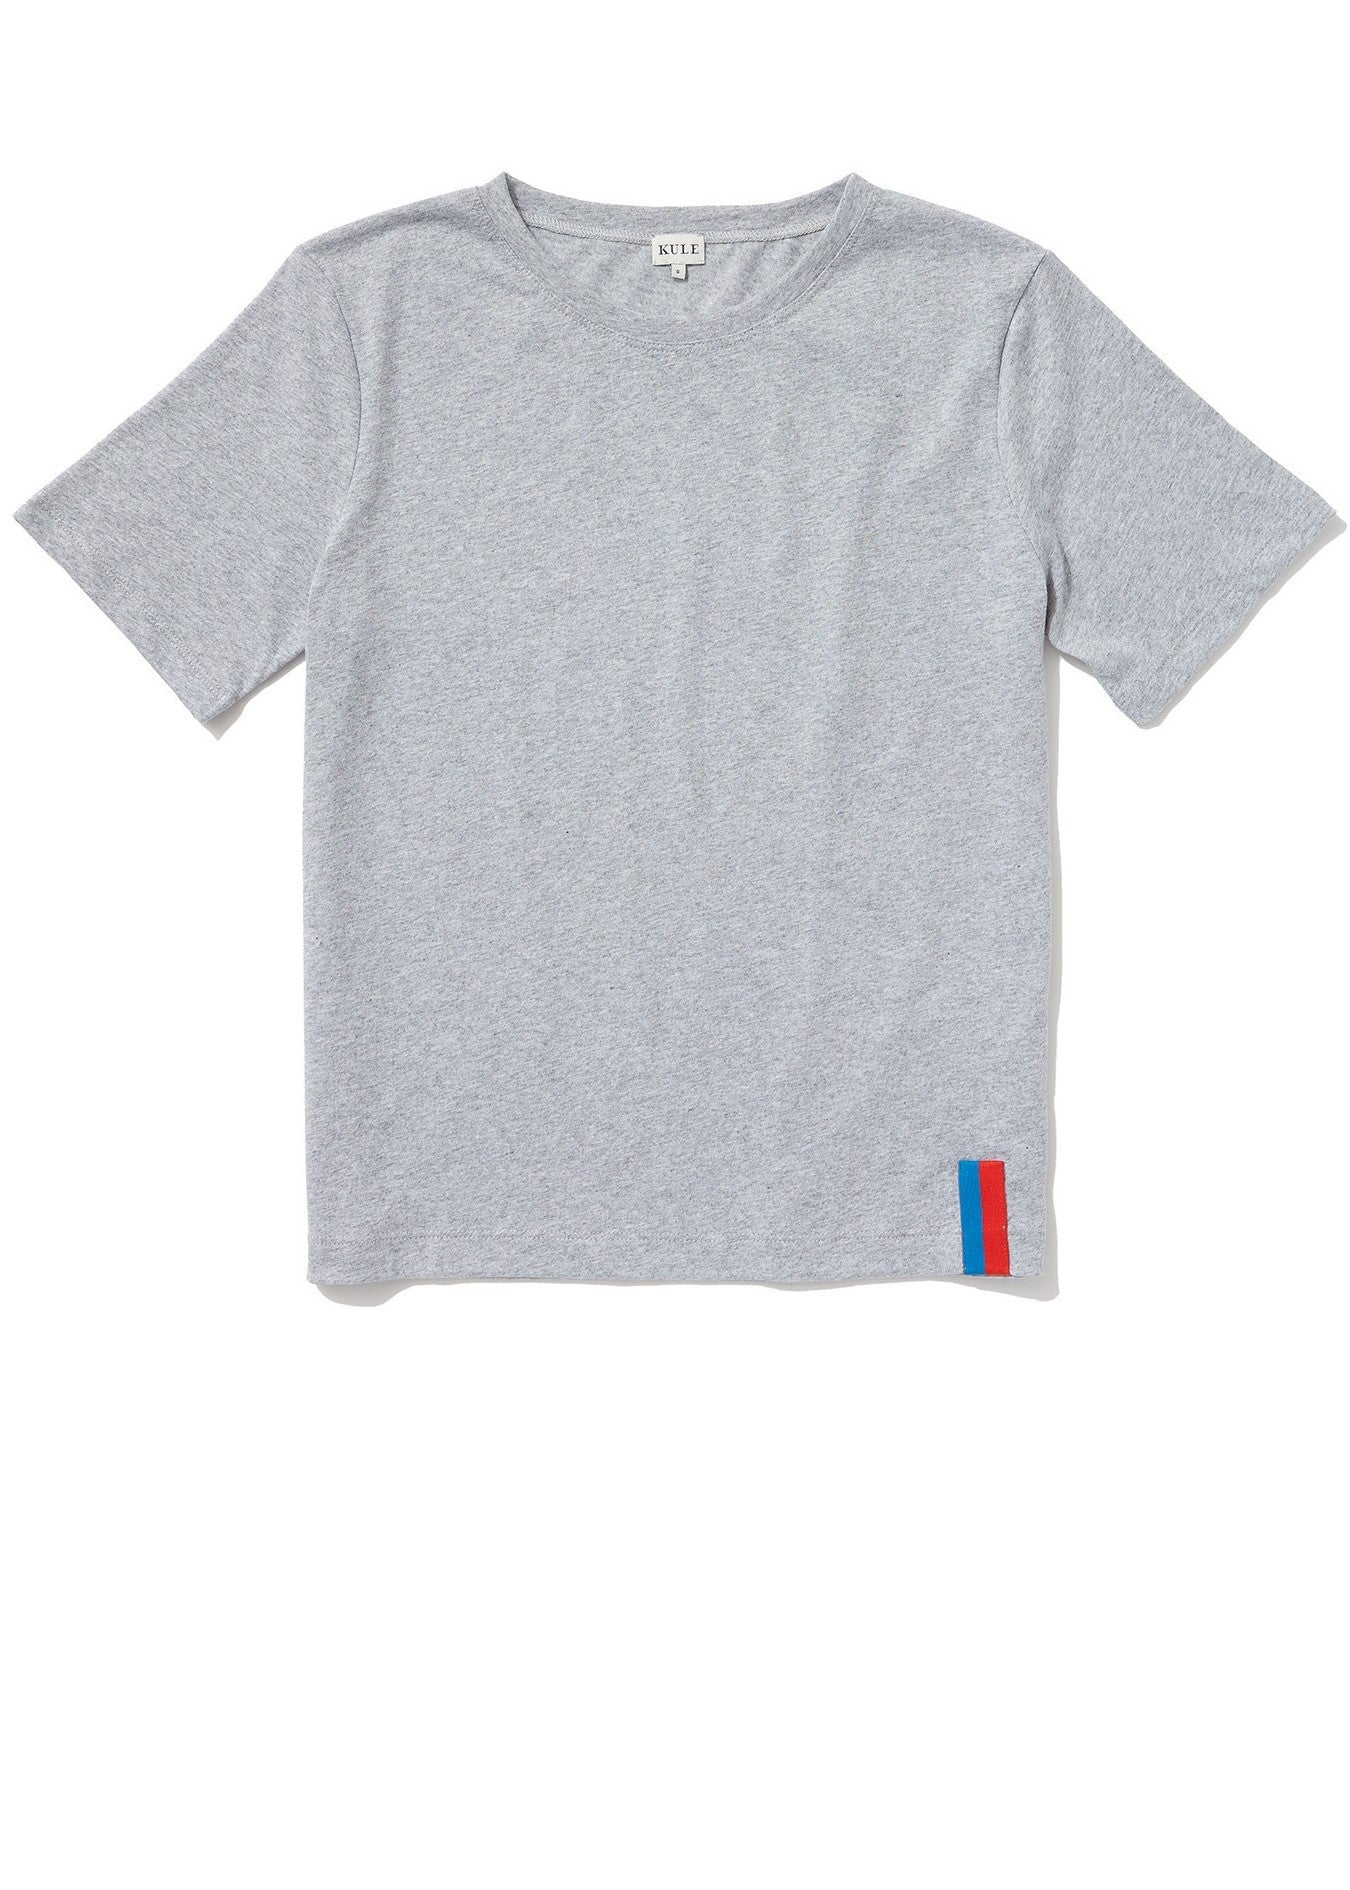 Kule modern solid tee heather grey